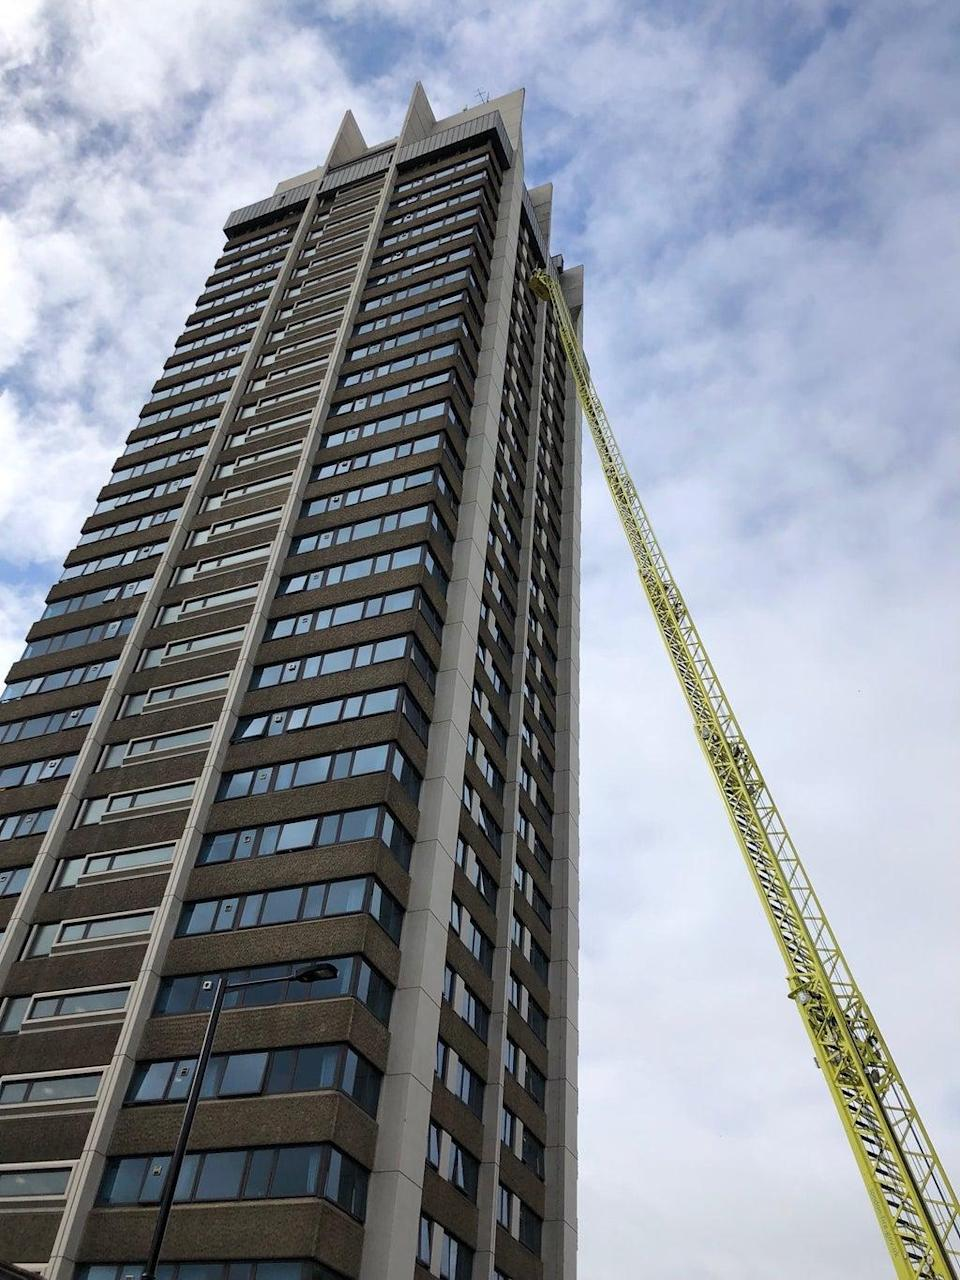 Ten storeys and going strong: the ladder can reach to about 21 storeys (Ross Lydall)